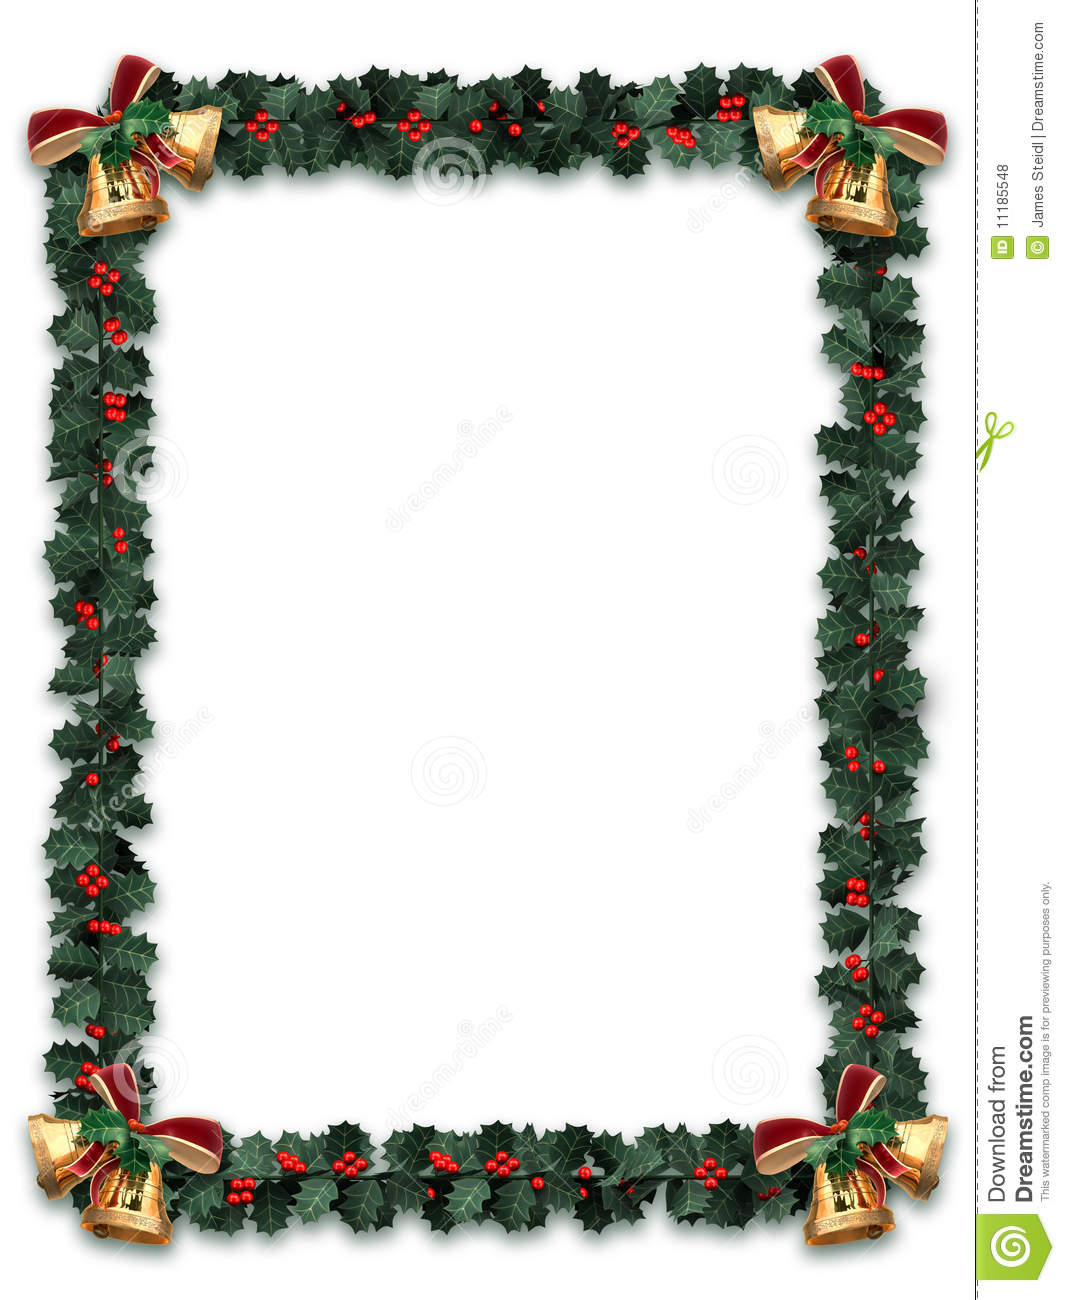 Christmas garland border pictures to pin on pinterest